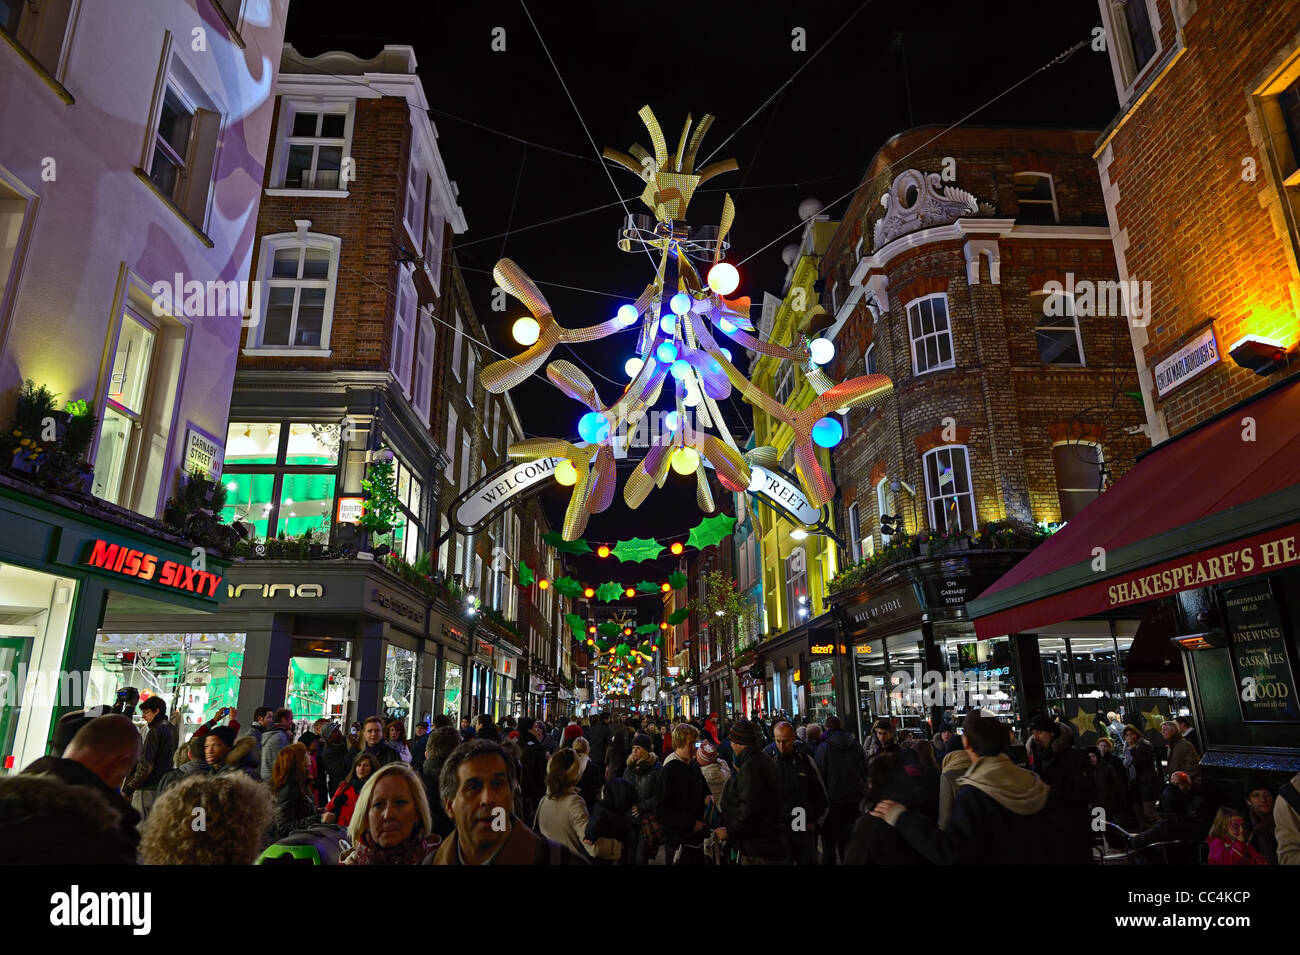 Carnaby Street full of Christmas shoppers, London, England, UK, with festive decorative lights at night - Stock Image